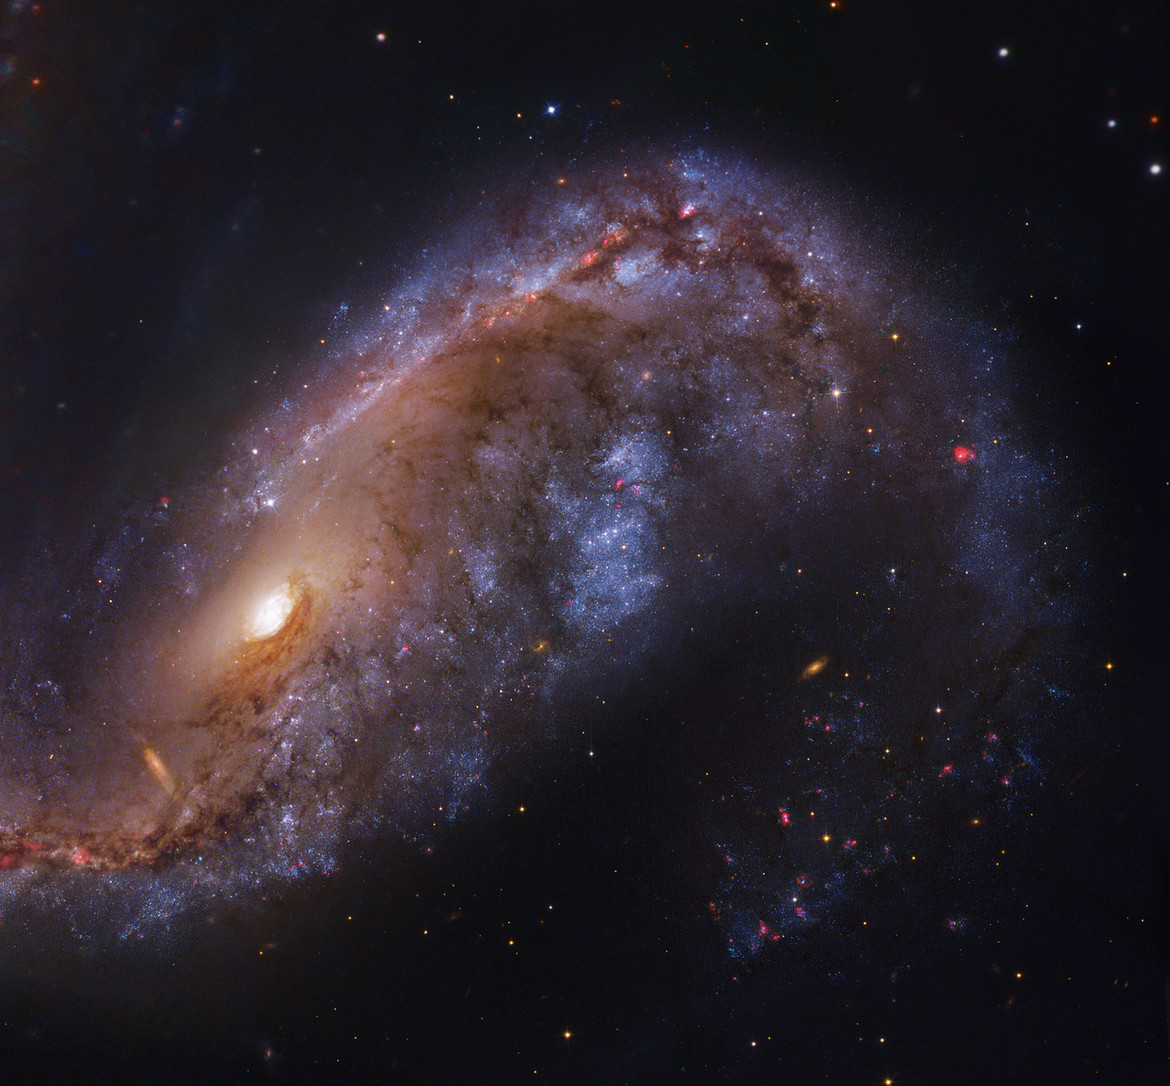 The inner regions of the Meathook Galaxy, NGC 2442, using observations from Hubble and a 2.2 meter telescope in Chile.\